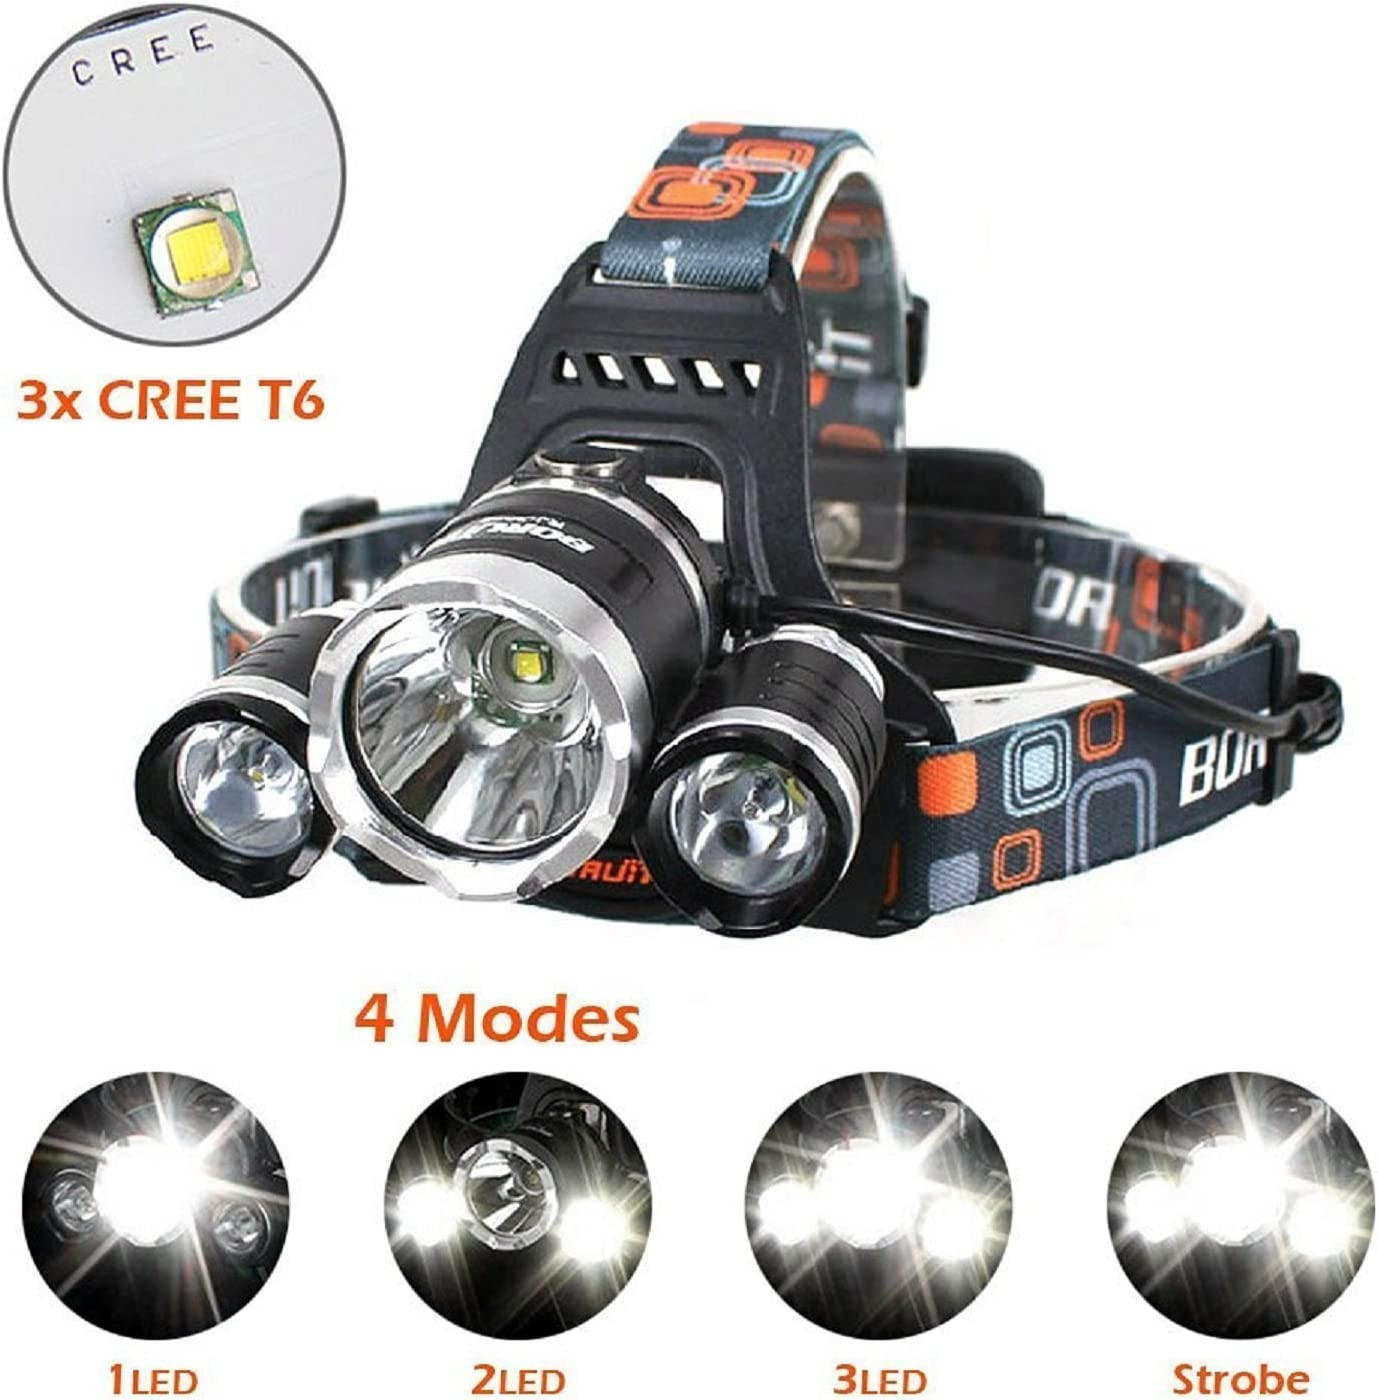 Newest Version OF Brightest LED Headlamp 20000 Lumen IMPROVED Cree Led, 4 Modes Headlight Battery Powered Helmet Light for Camping Running Hiking and Reading, (Charging equipment and Batteries) Included - -